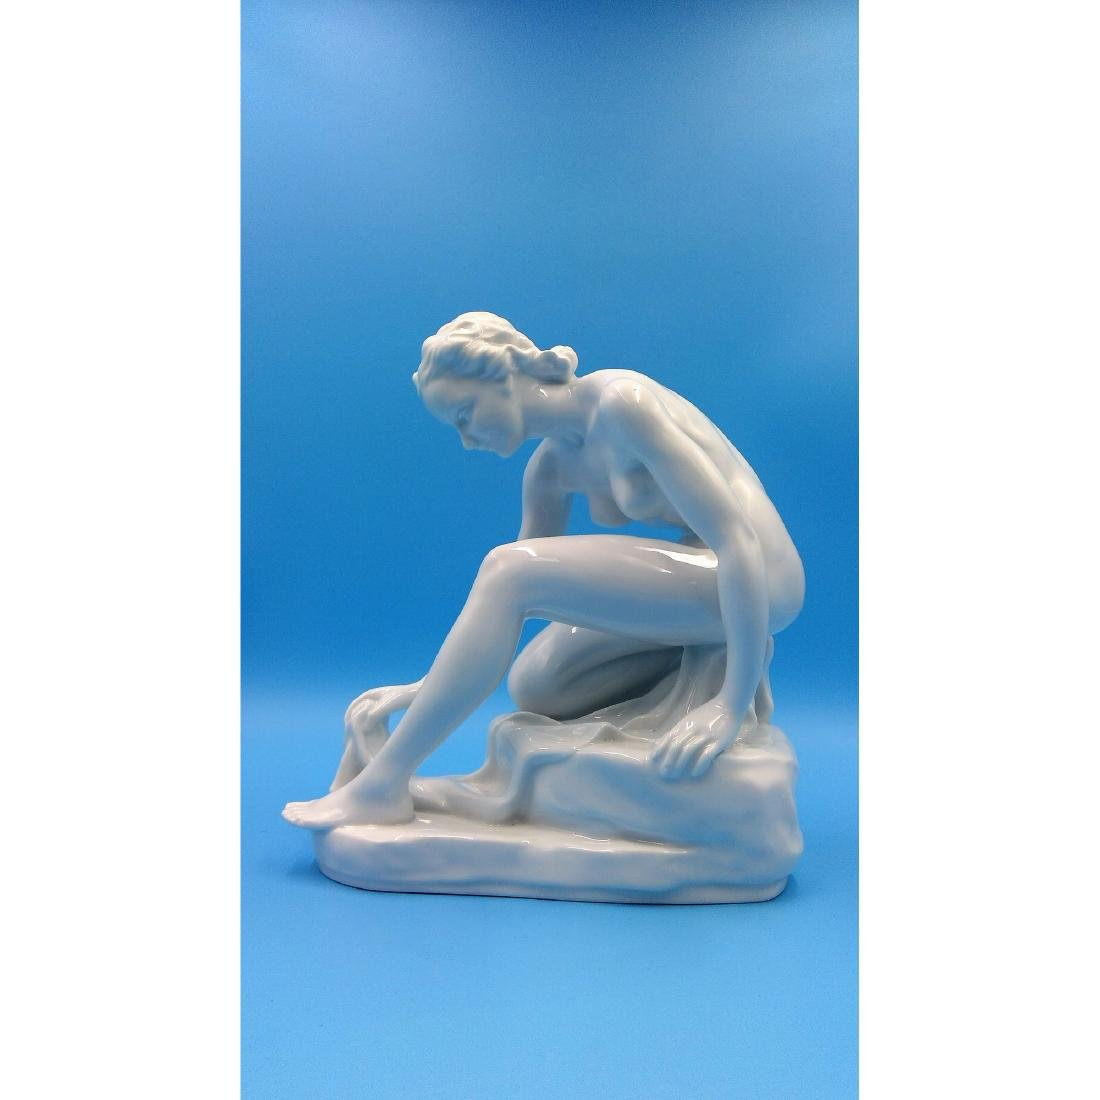 HEREND HUNGARIAN PORCELAIN FIGURINE NUDE BATHER